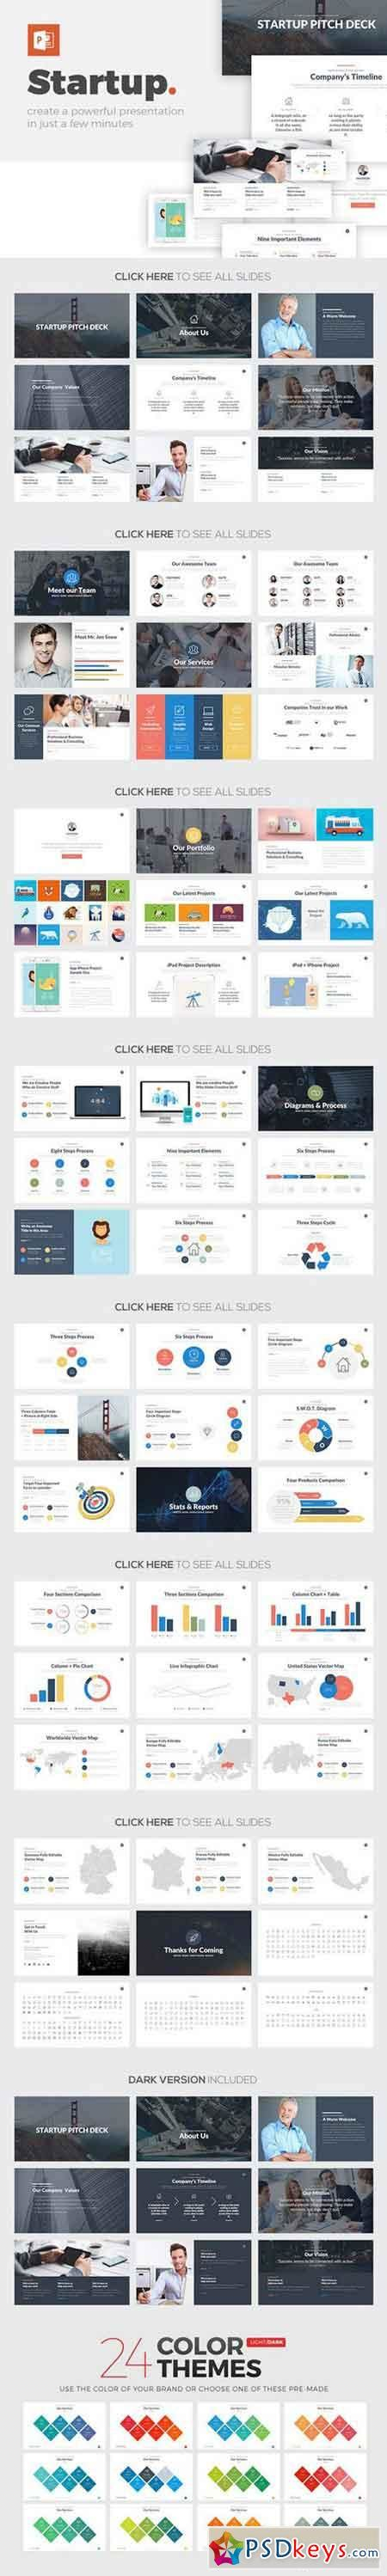 powerpoint startup template powerpoint 187 page 7 187 free photoshop vector stock